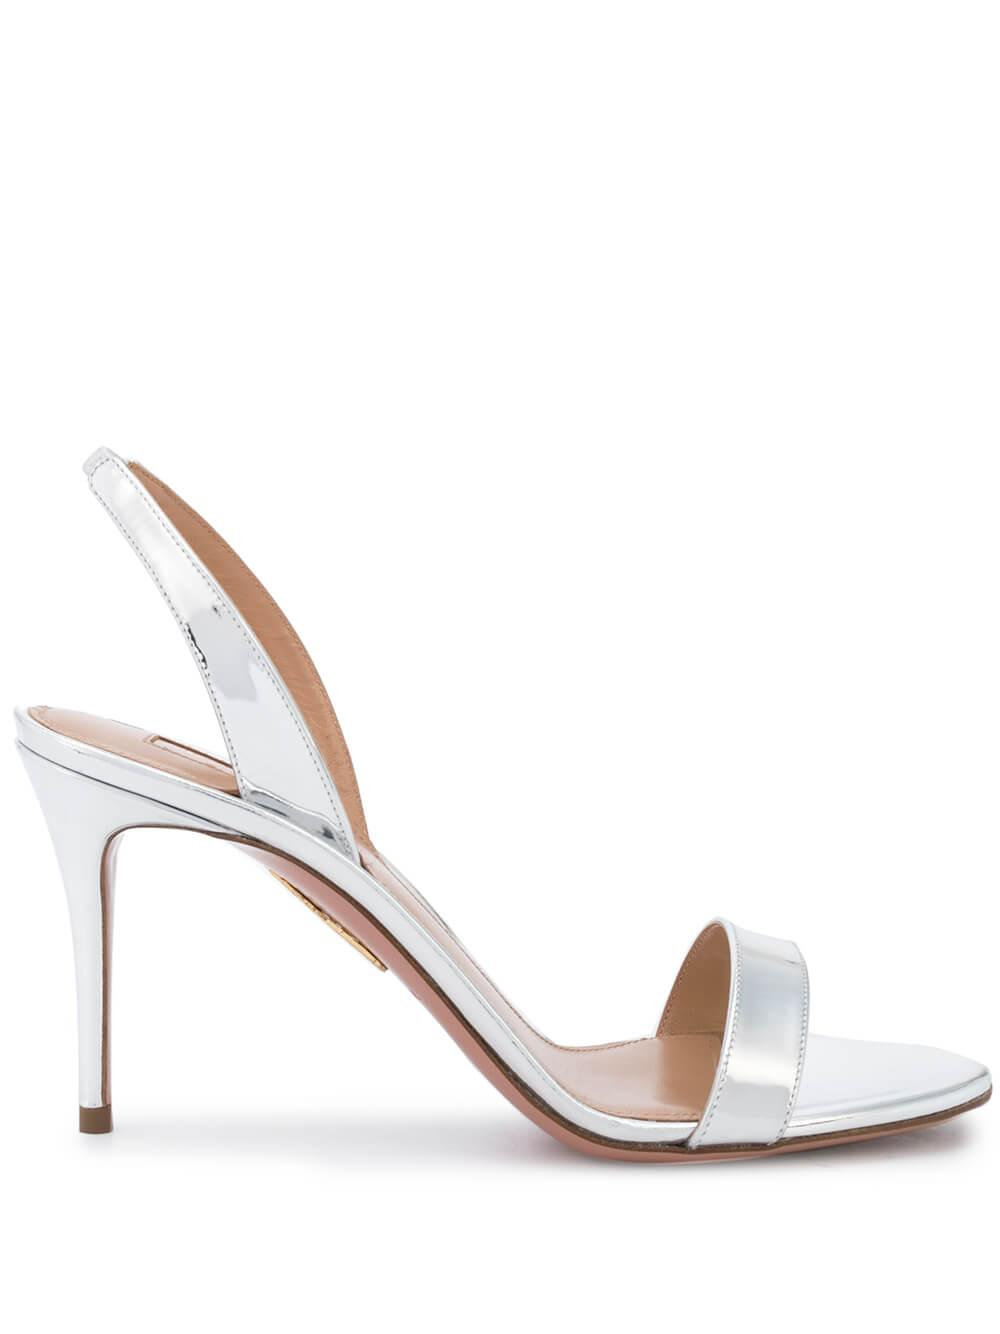 So Nude 85MM Sling Back Leather Sandal